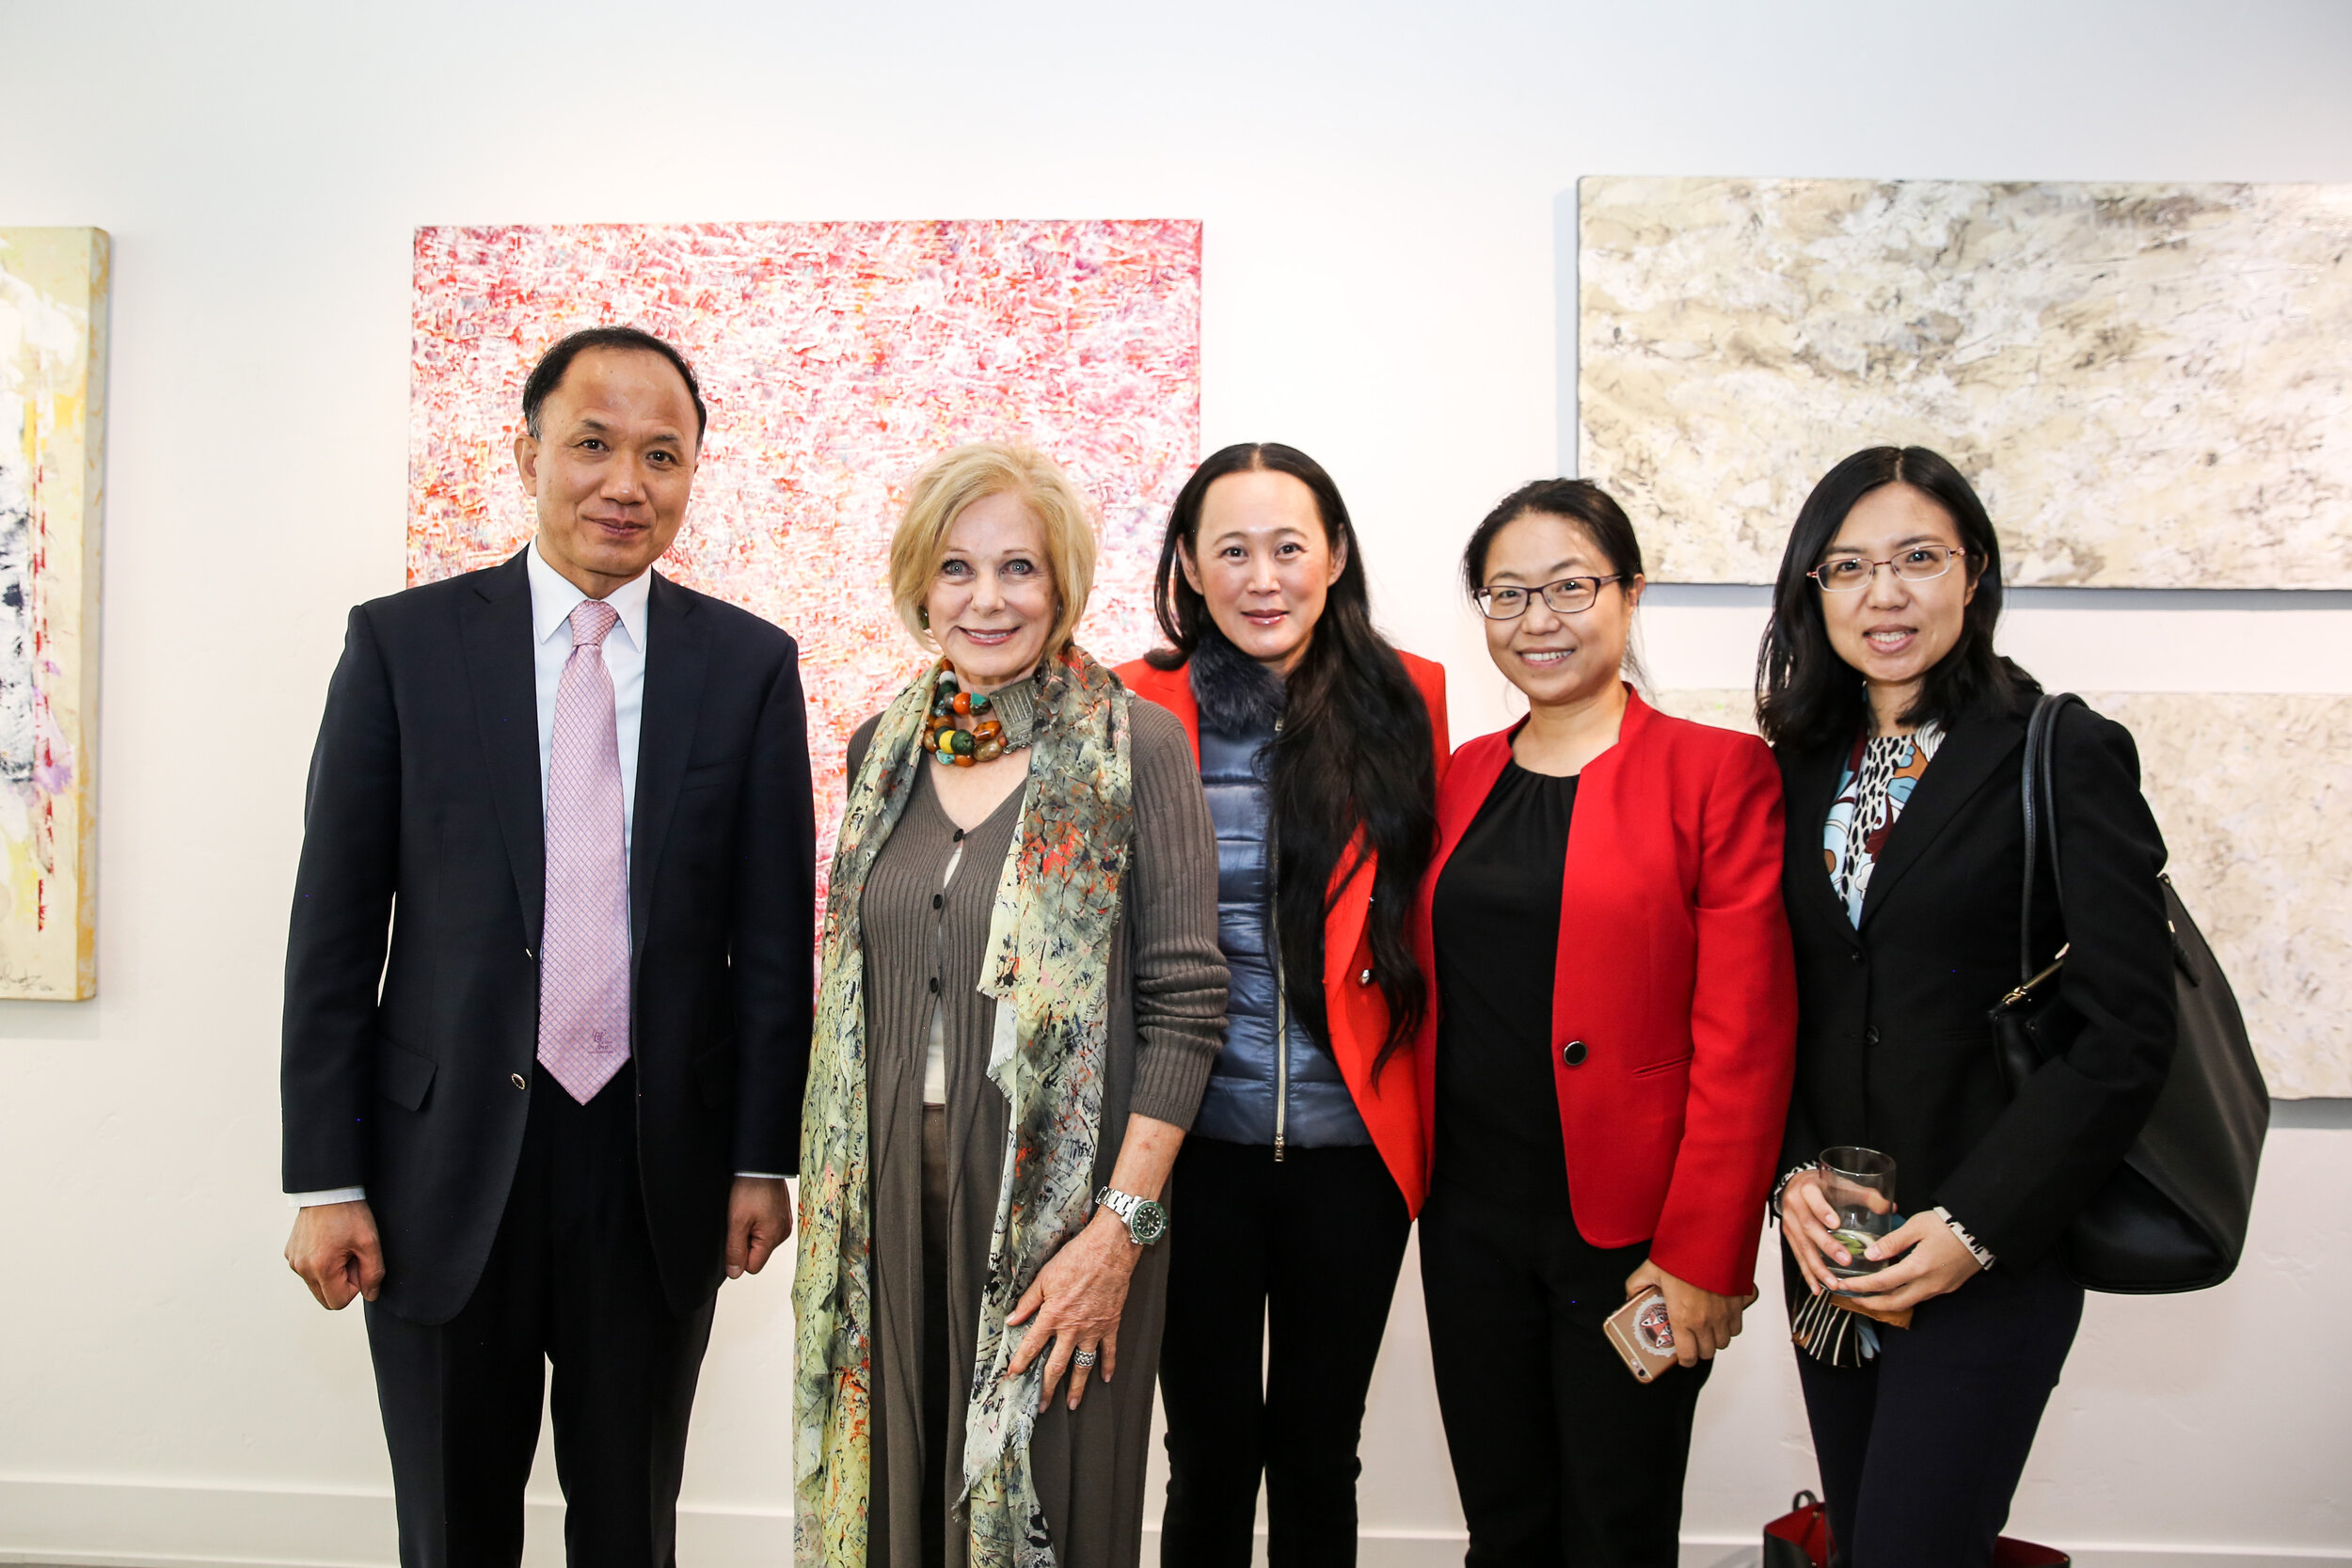 Susan with Naja Lockwood and Chinese Embassy Officials